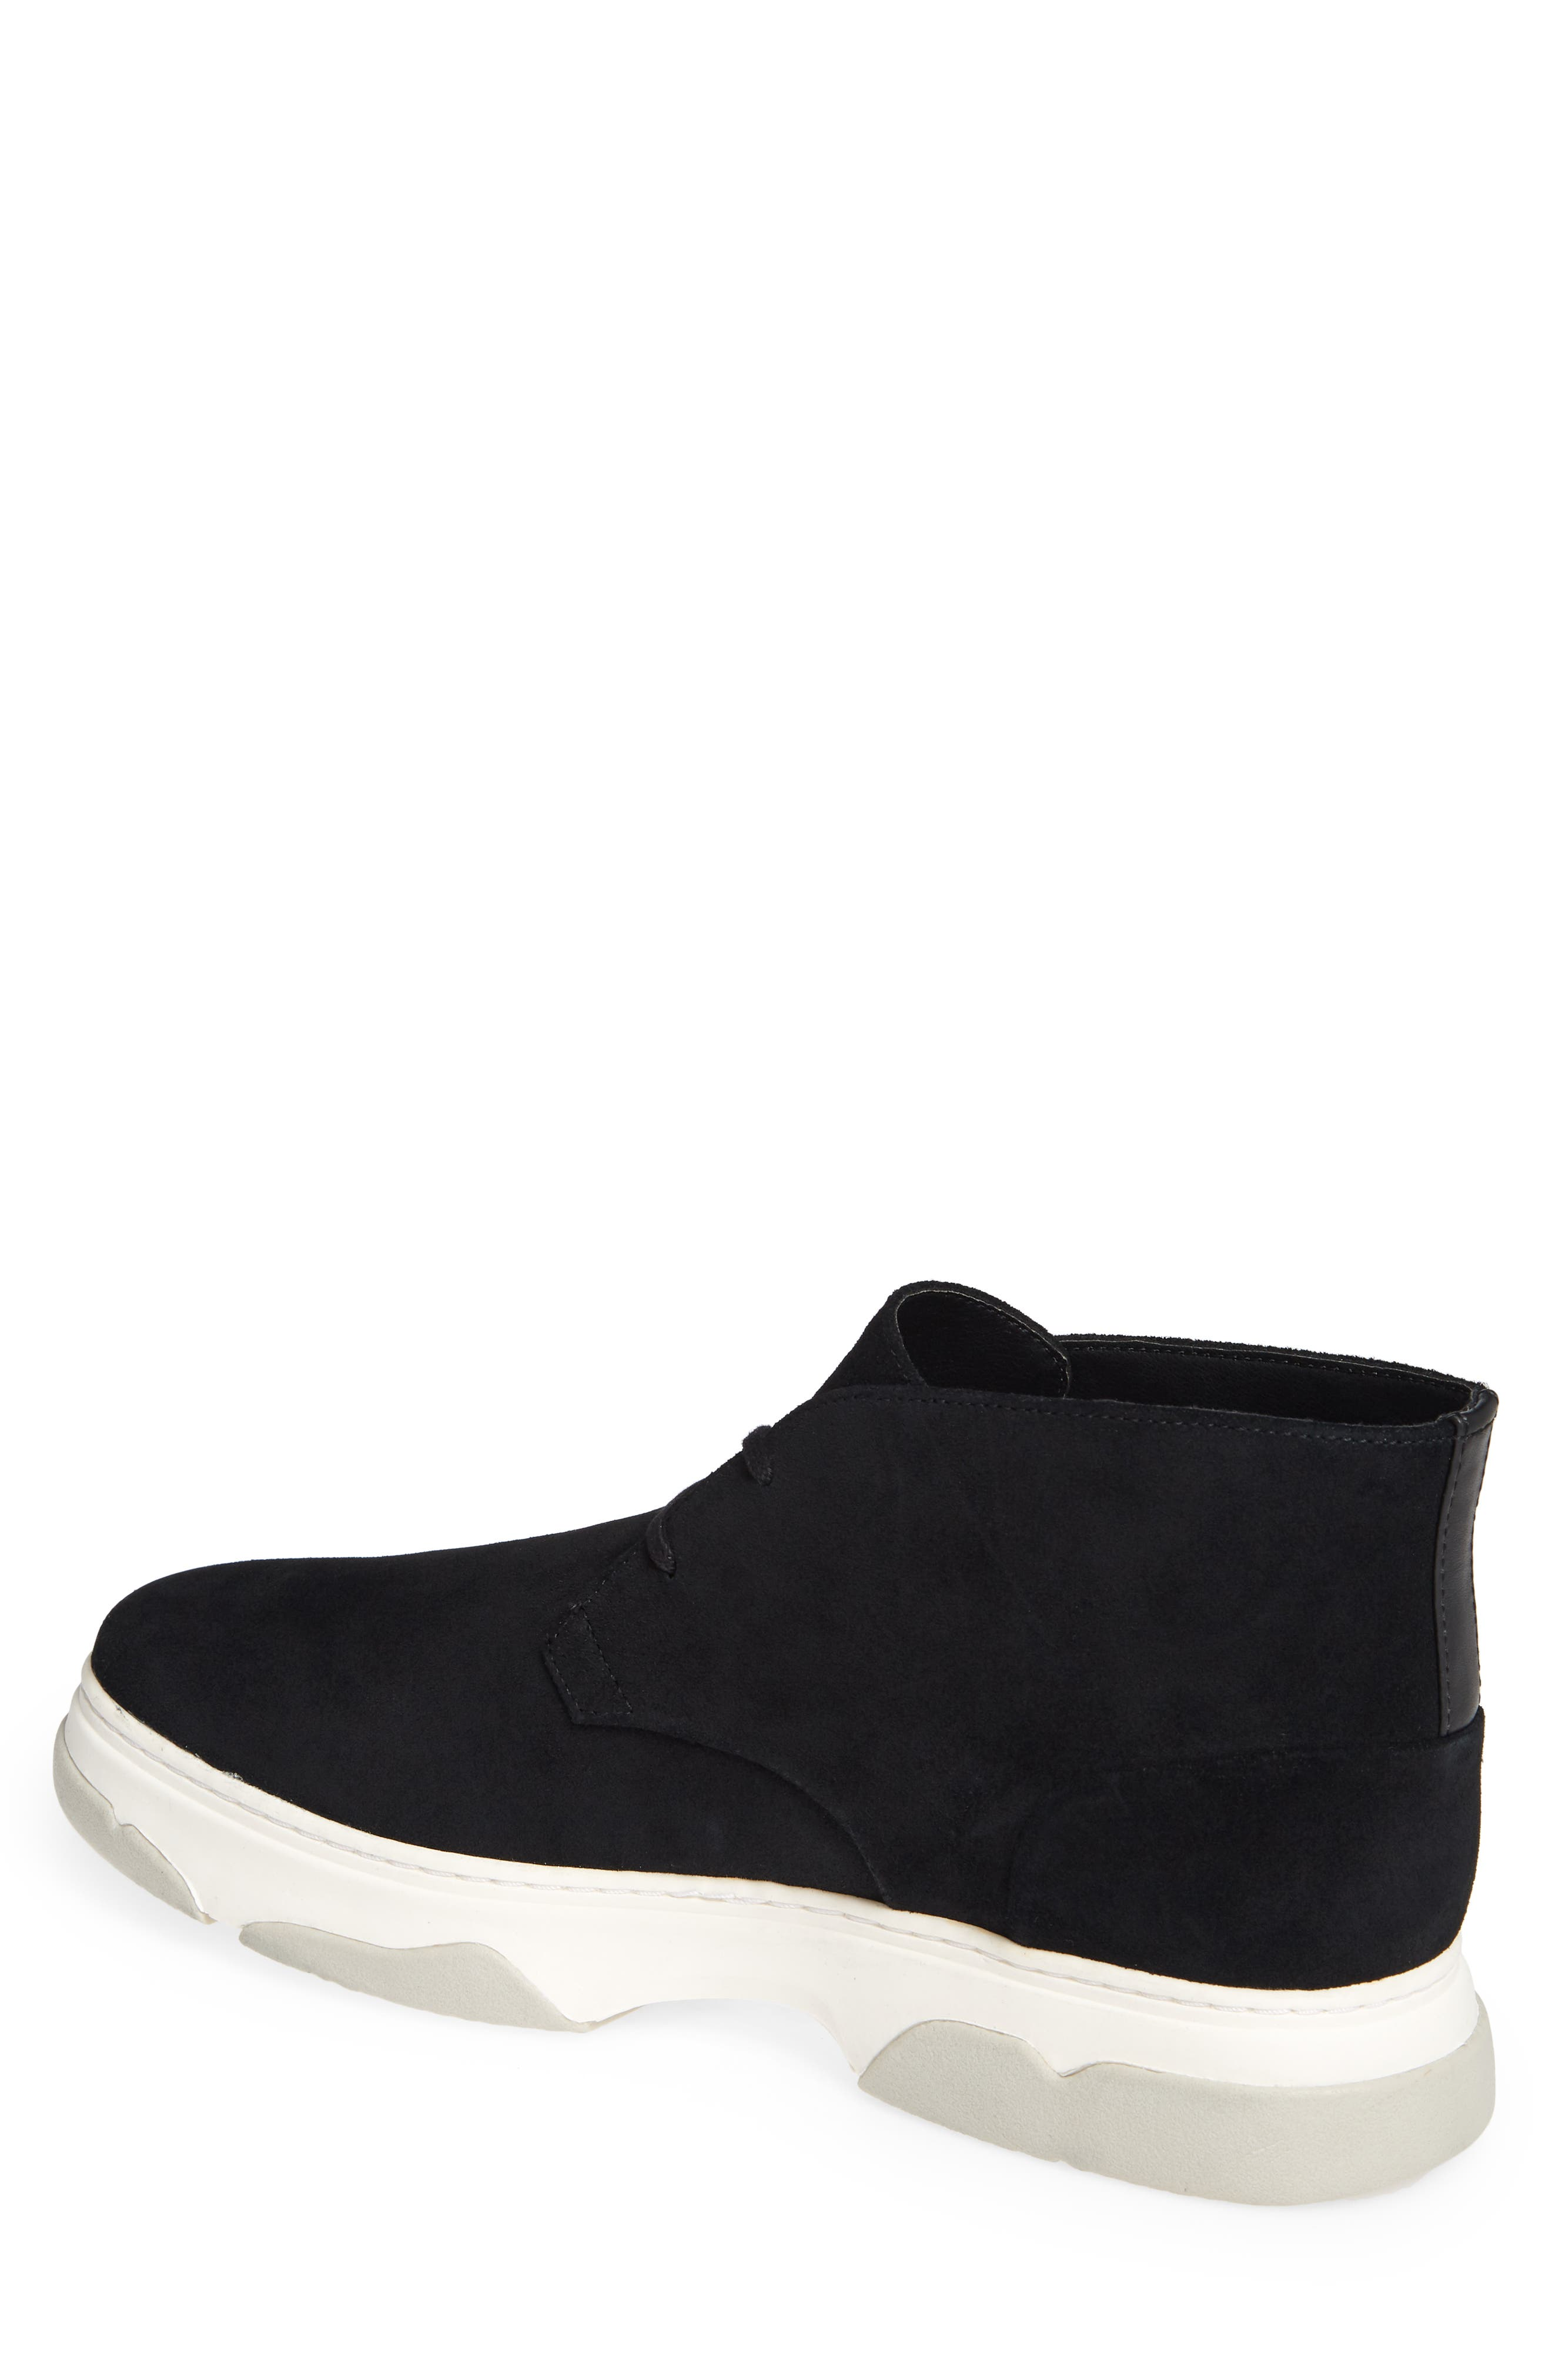 Perry Chukka Boot,                             Alternate thumbnail 2, color,                             BLACK CALF SUEDE